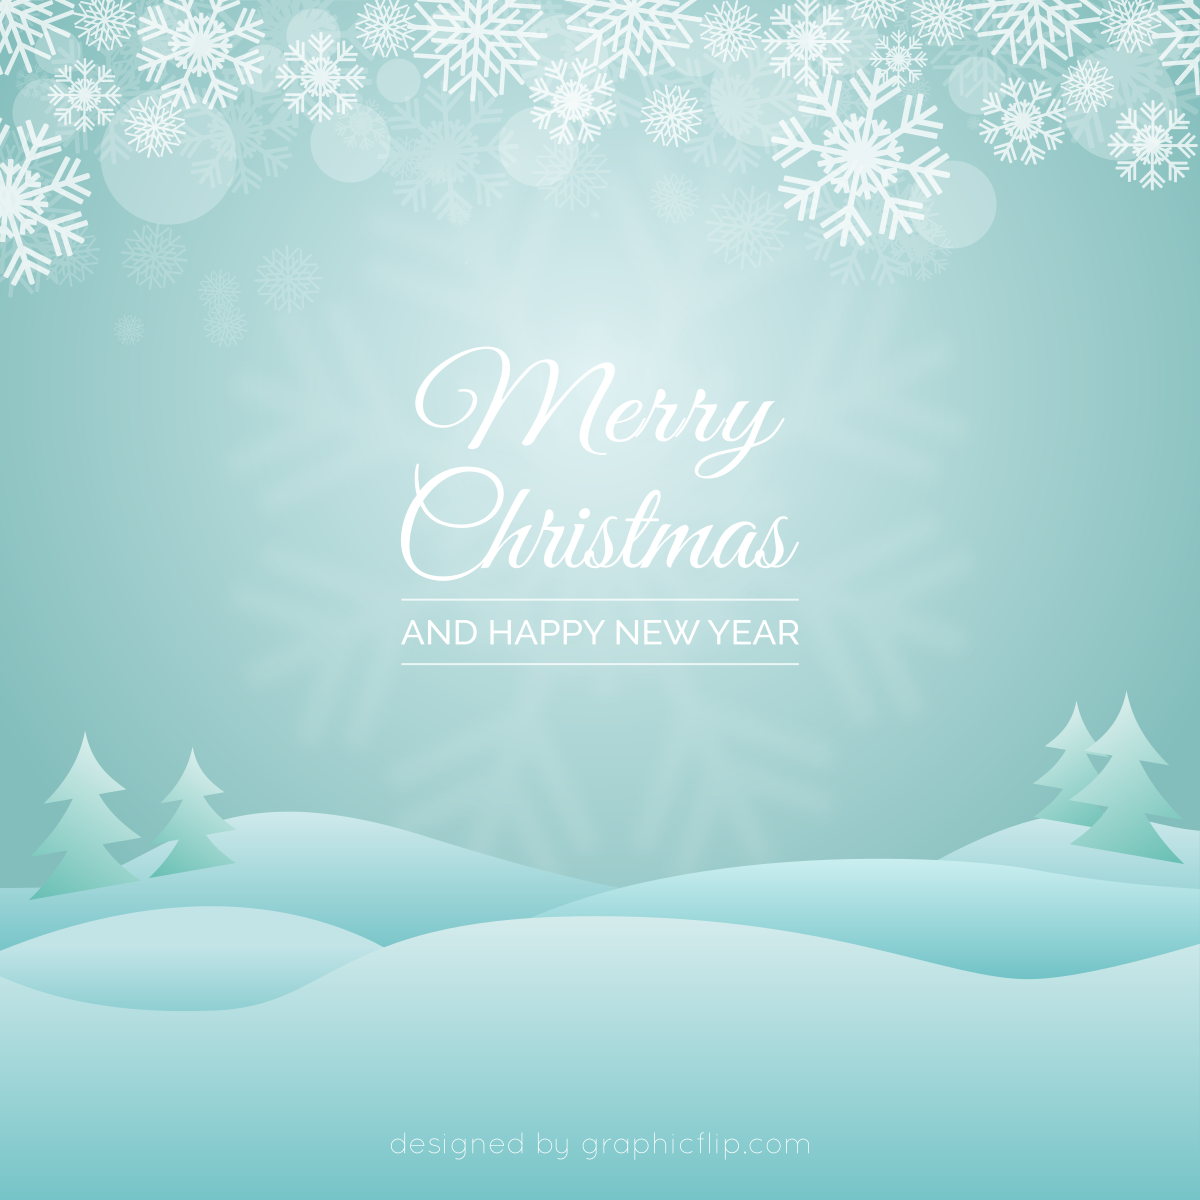 Free christmas new year greeting vector pngsvg on behance kristyandbryce Image collections